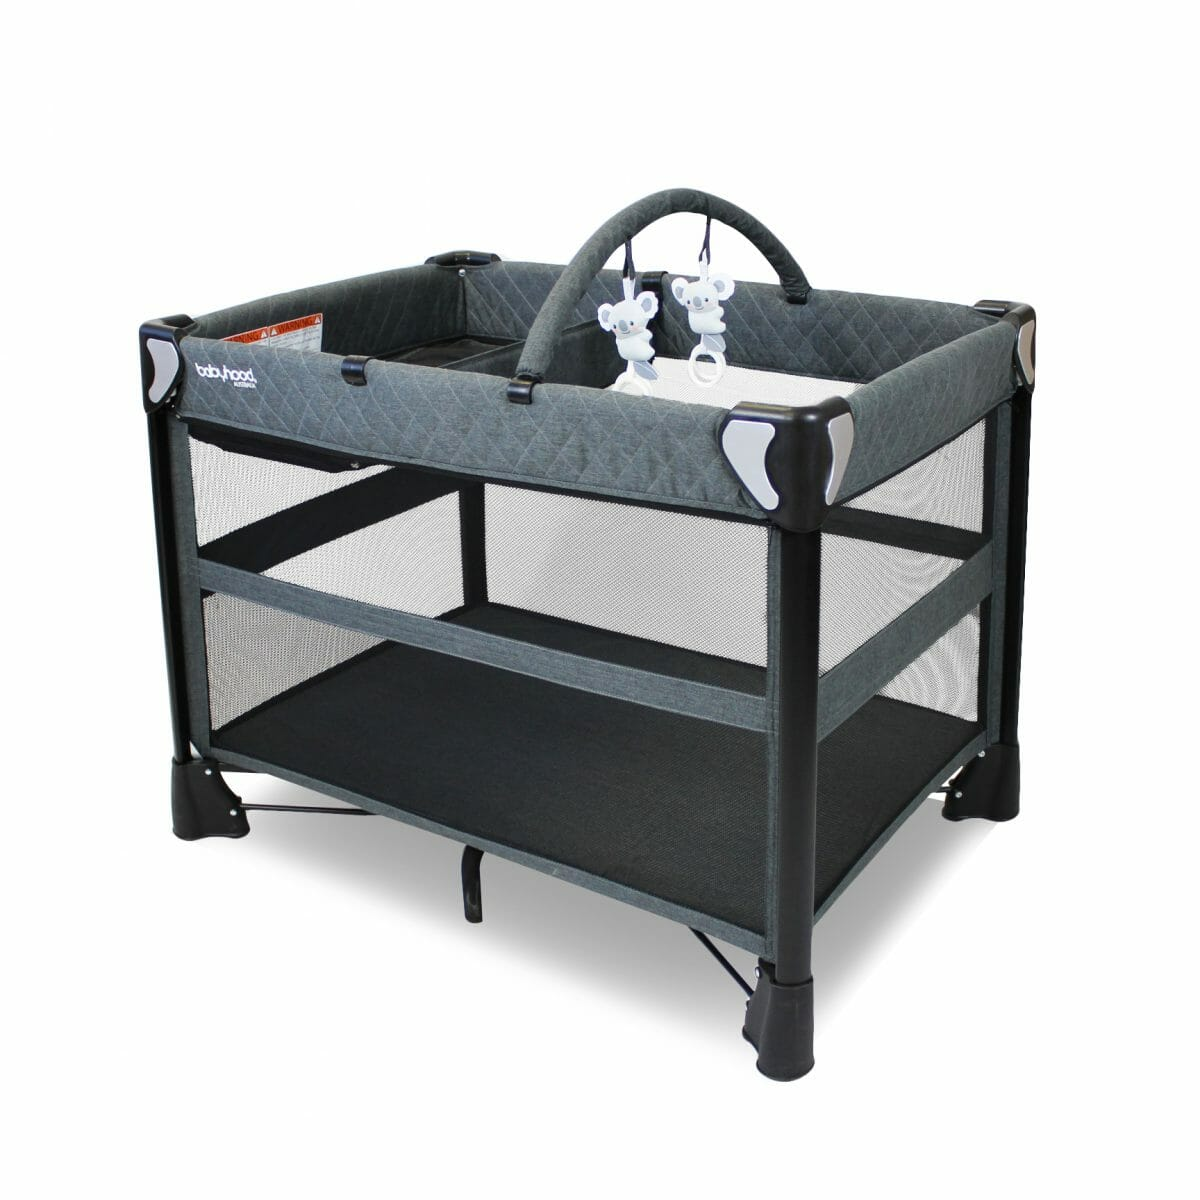 Babyhood Uno 4 In 1 Portacot With Change Table And Toybar